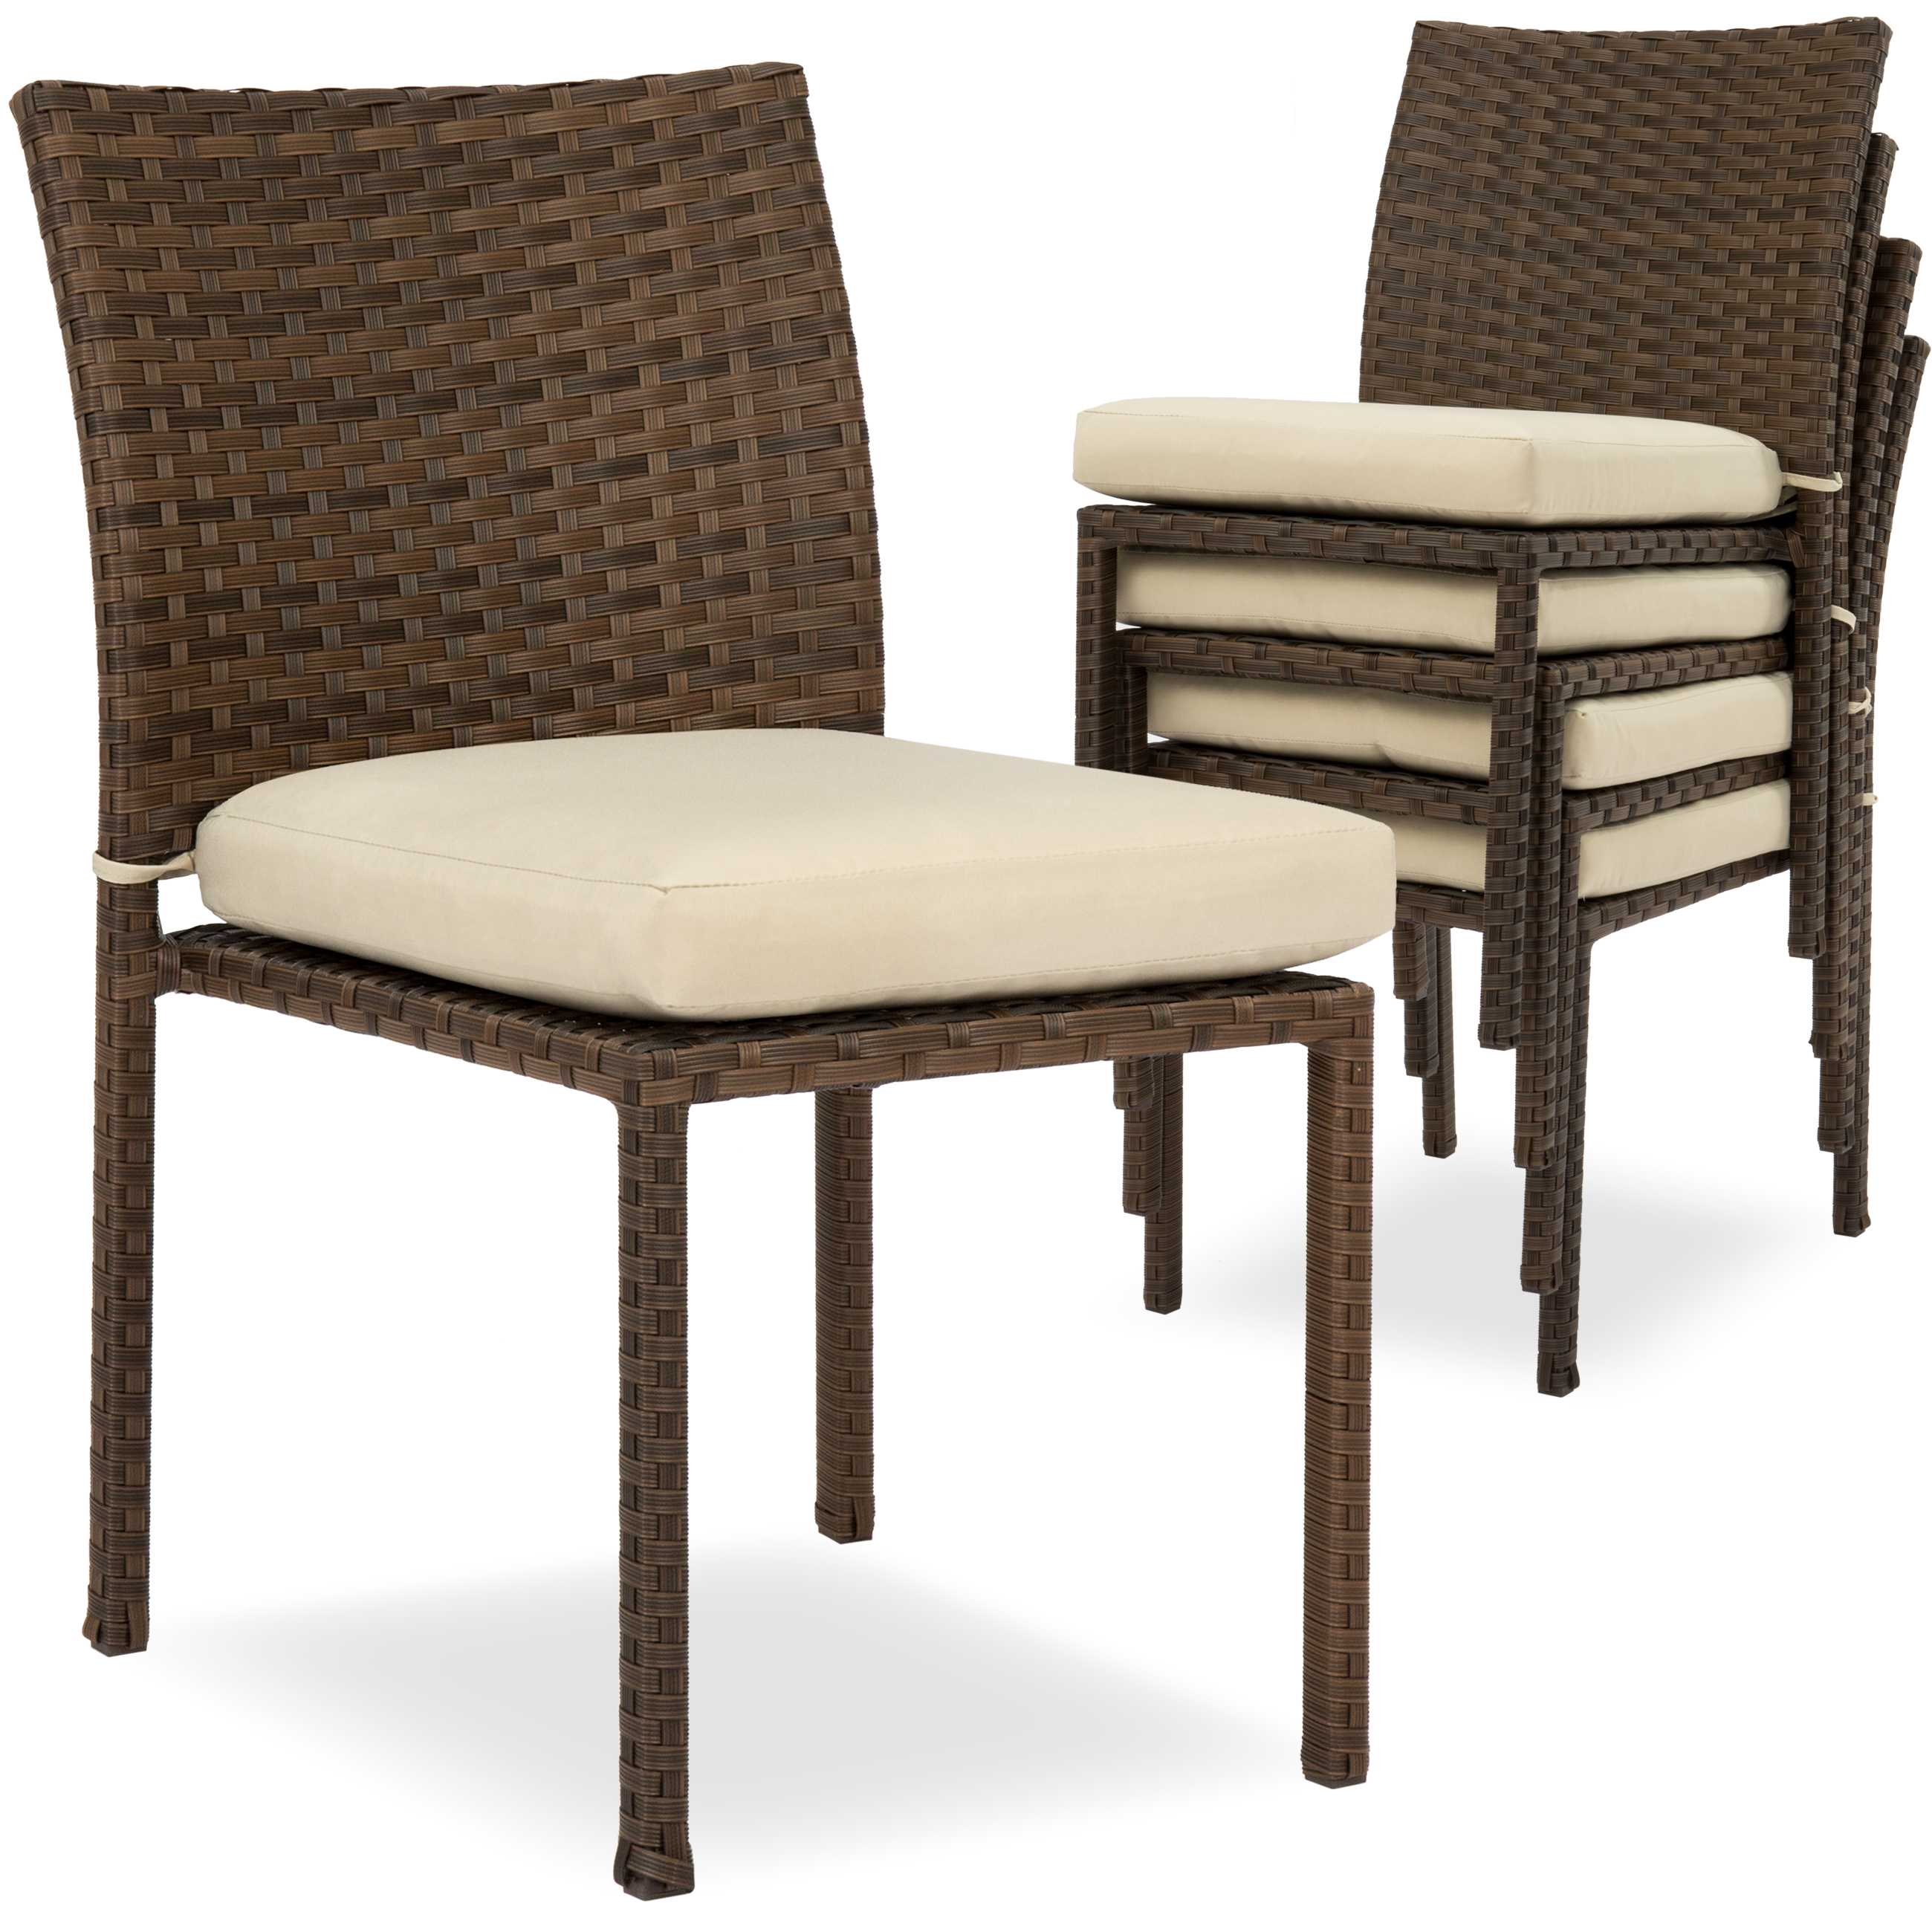 Best Choice Products Set of 4 Stackable Outdoor Patio Wicker Chairs w/ Cushions, UV-Resistant Finish, Steel Frame - Brown